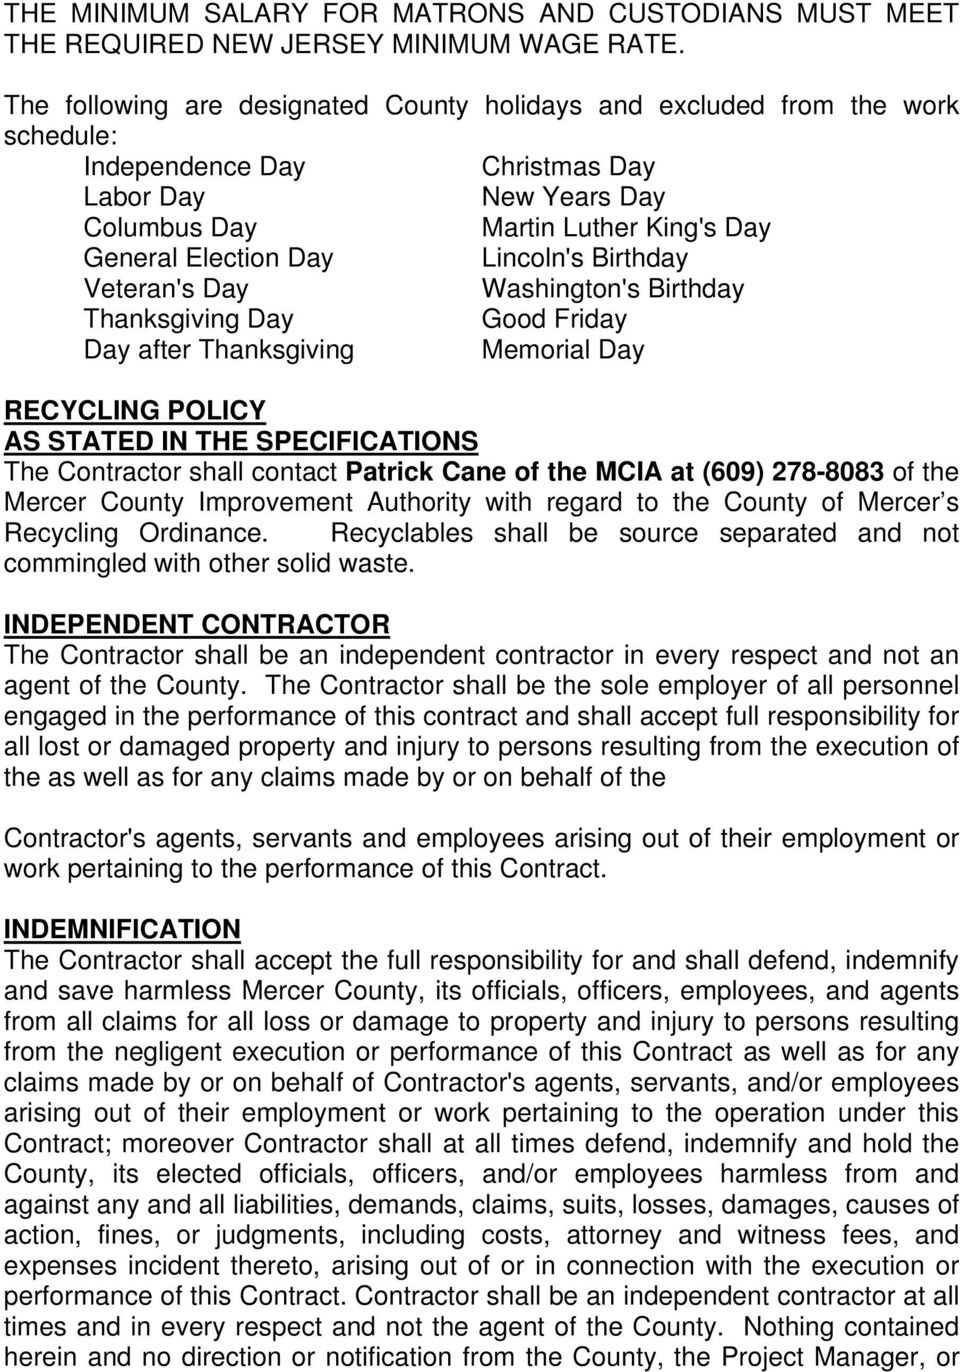 Lincoln's Birthday Veteran's Day Washington's Birthday Thanksgiving Day Good Friday Day after Thanksgiving Memorial Day RECYCLING POLICY AS STATED IN THE SPECIFICATIONS The Contractor shall contact